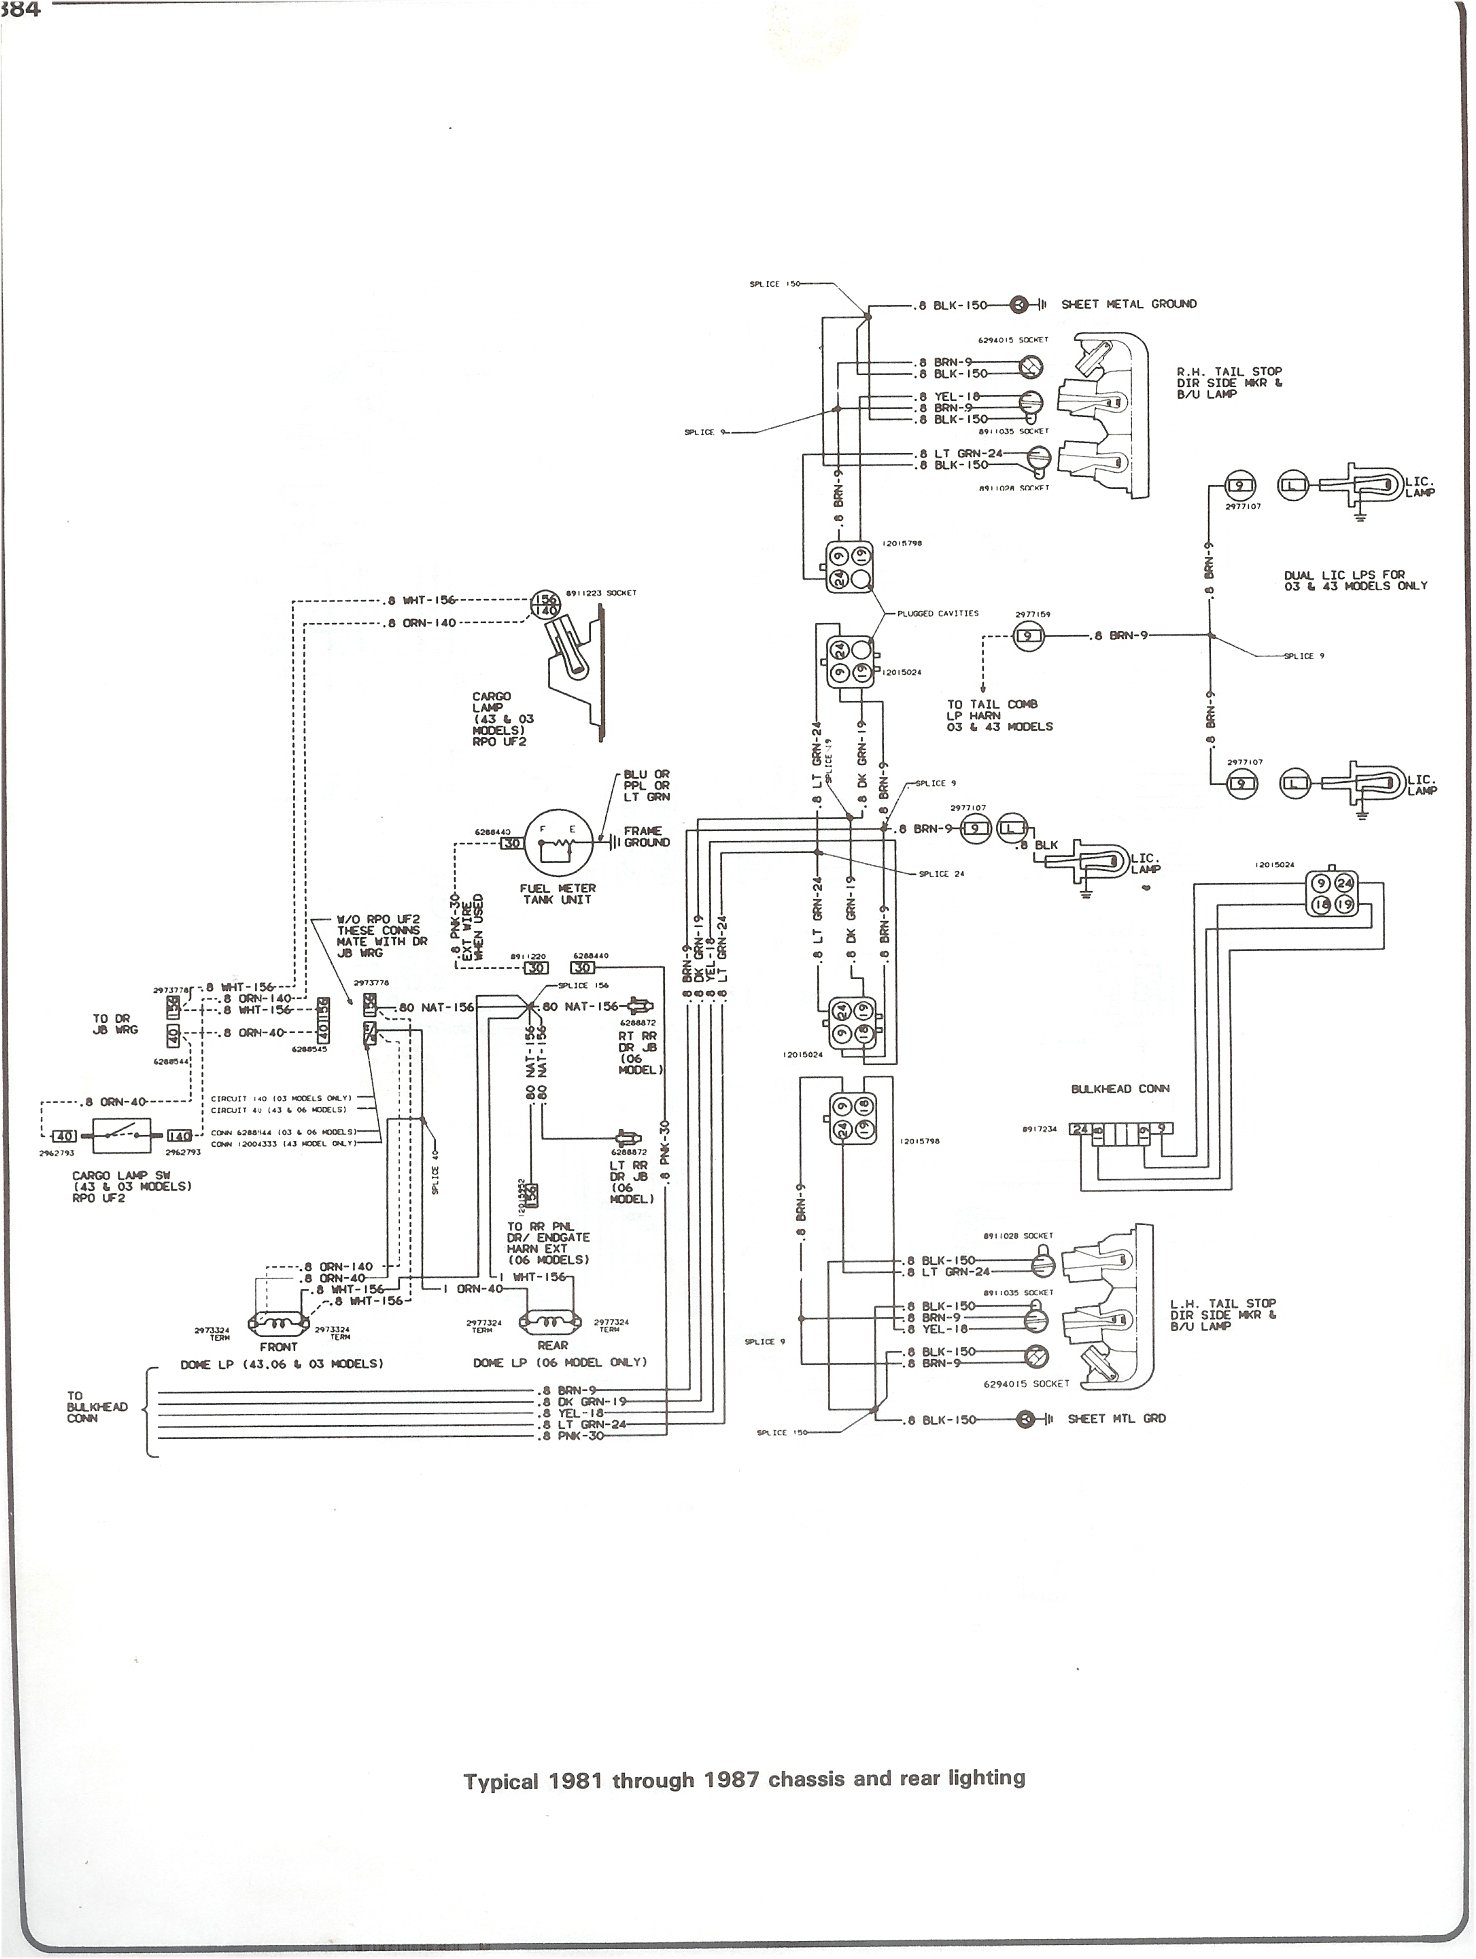 Chevy Silverado Drawing At Free For Personal Use 95 Tahoe Fuse Box 1476x1959 Complete 73 87 Wiring Diagrams